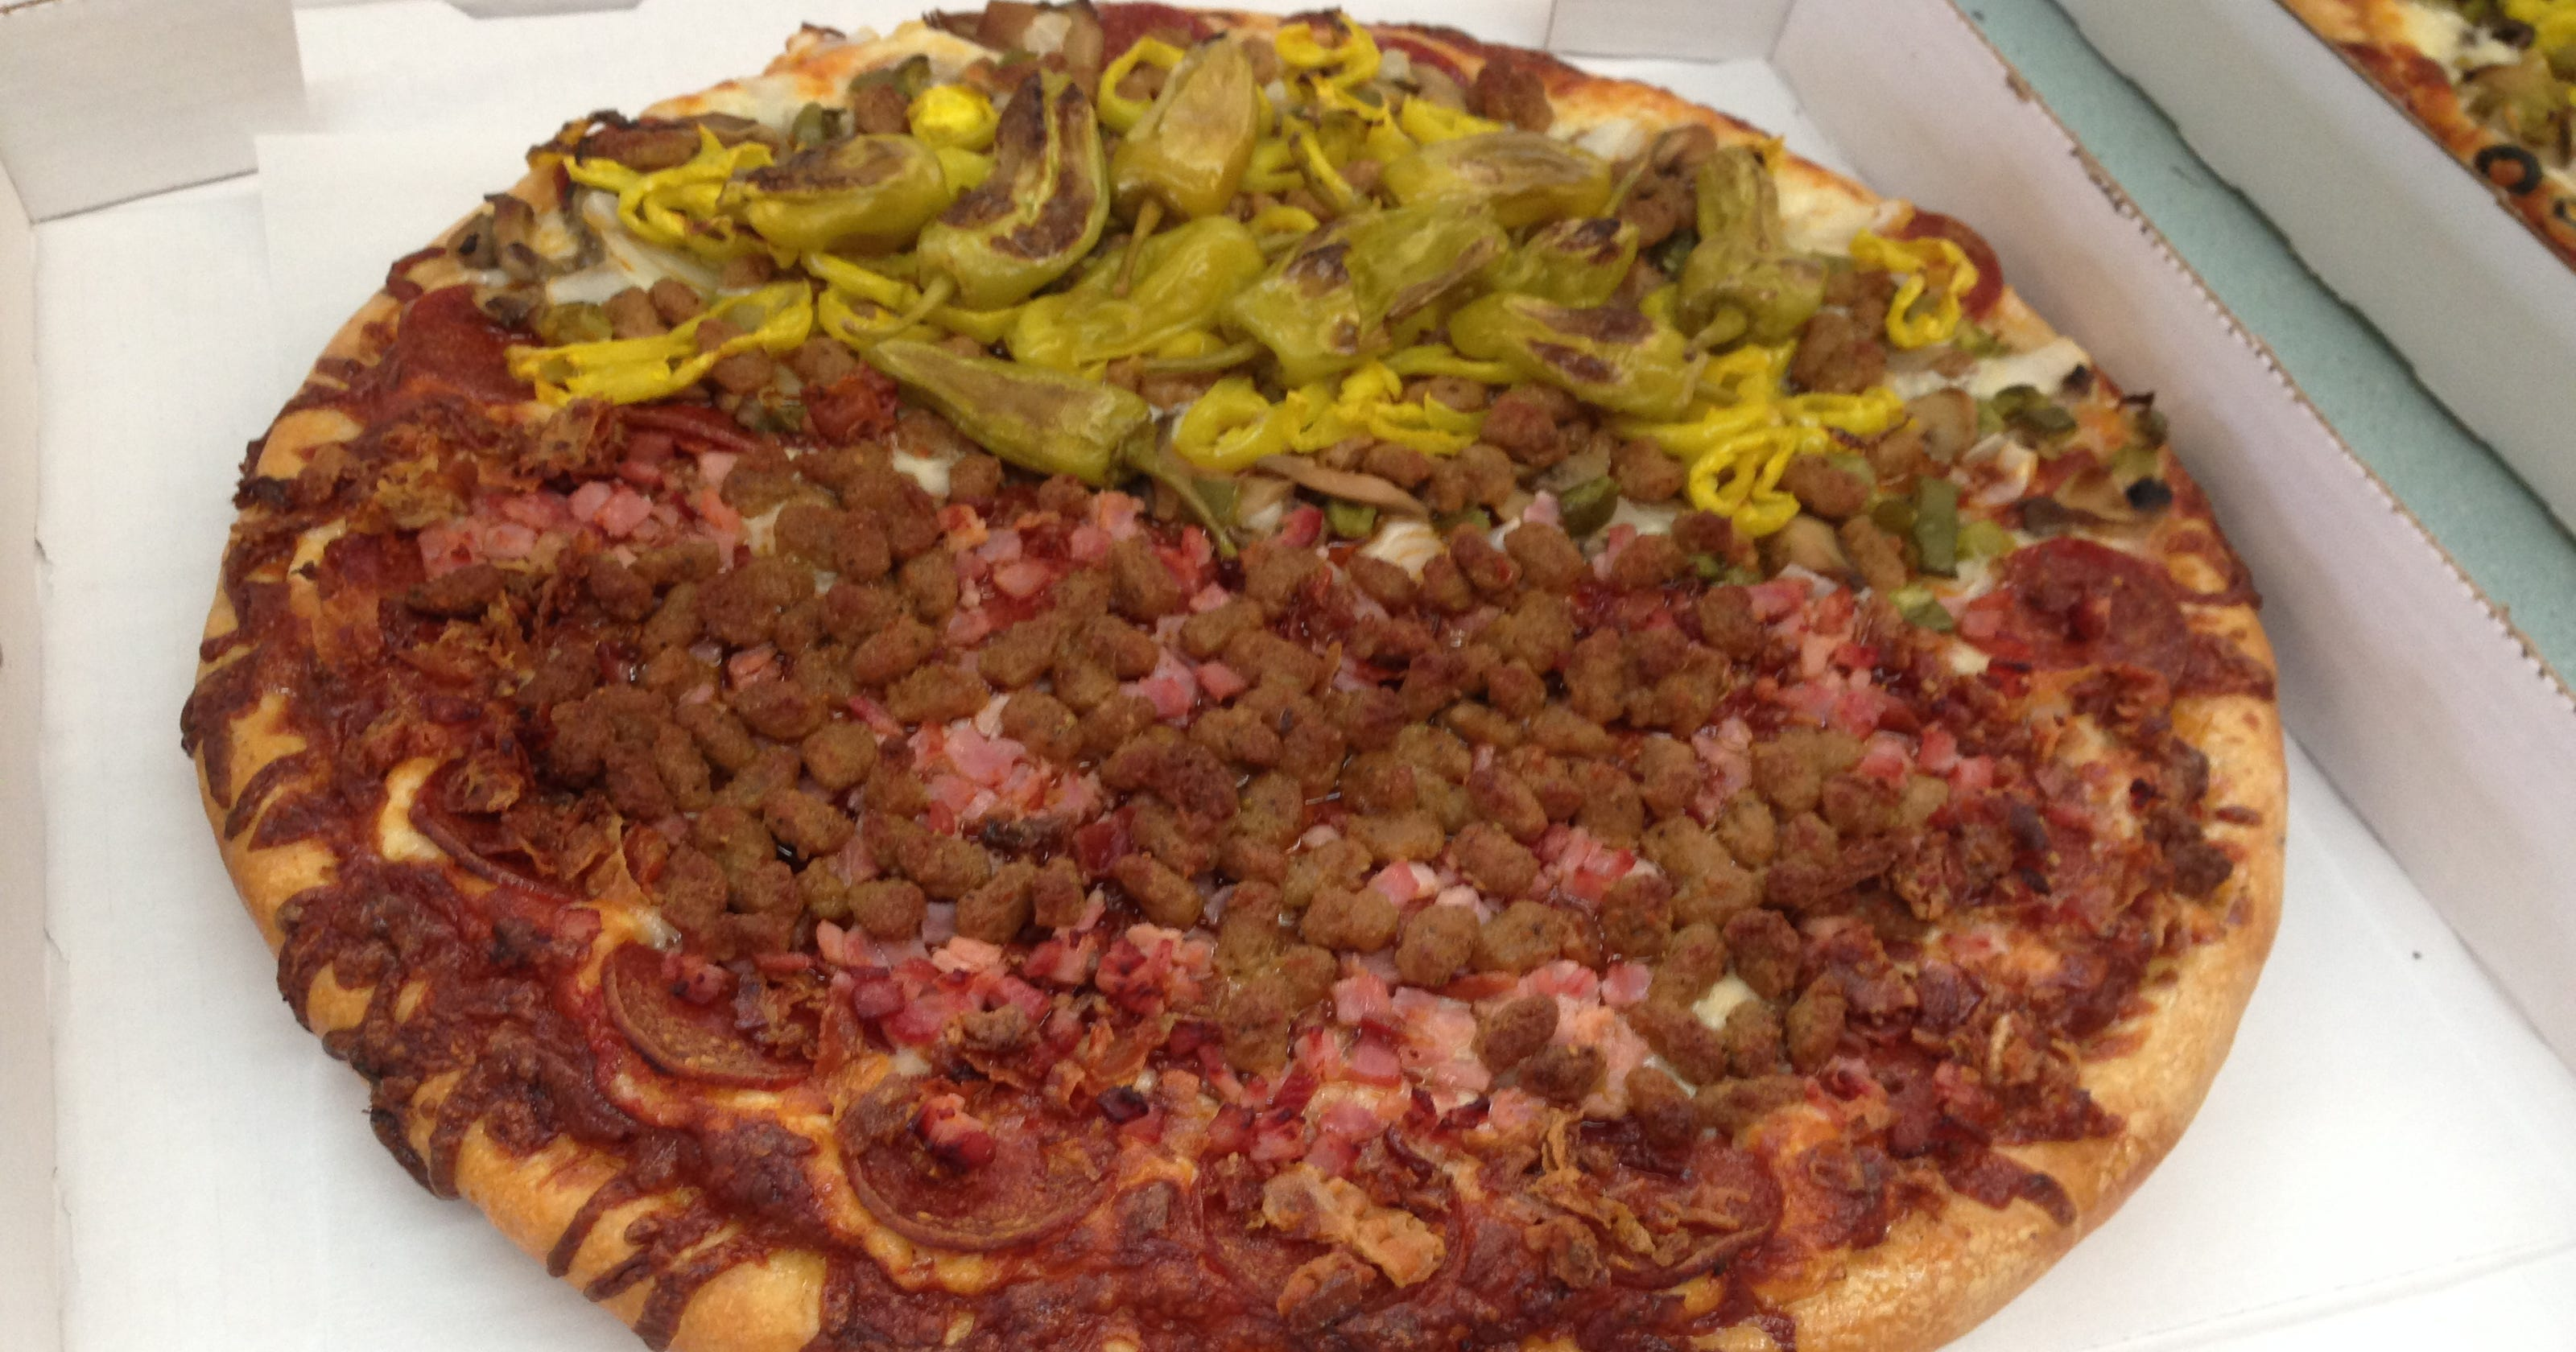 Made to Order: Deschner\'s dishes up pizza, chicken